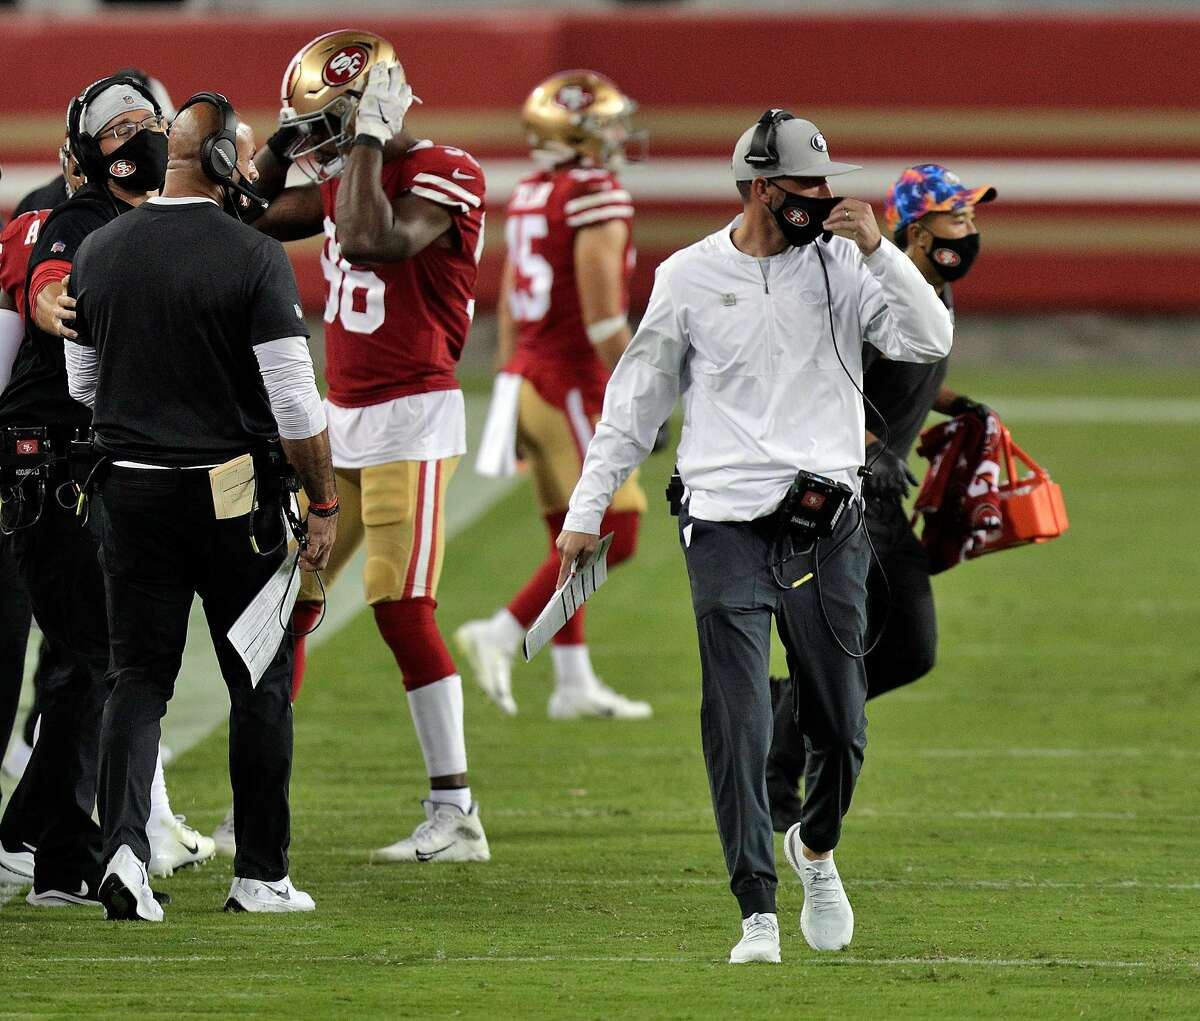 NFL coaches such as the 49ers' Kyle Shanahan no longer need to wear face coverings during games if they are fully vaccinated, according to Wednesday's announcement by the league. Shanahan is shown adjusting his mask during a home game against Philadelphia on Oct. 4, 2020.